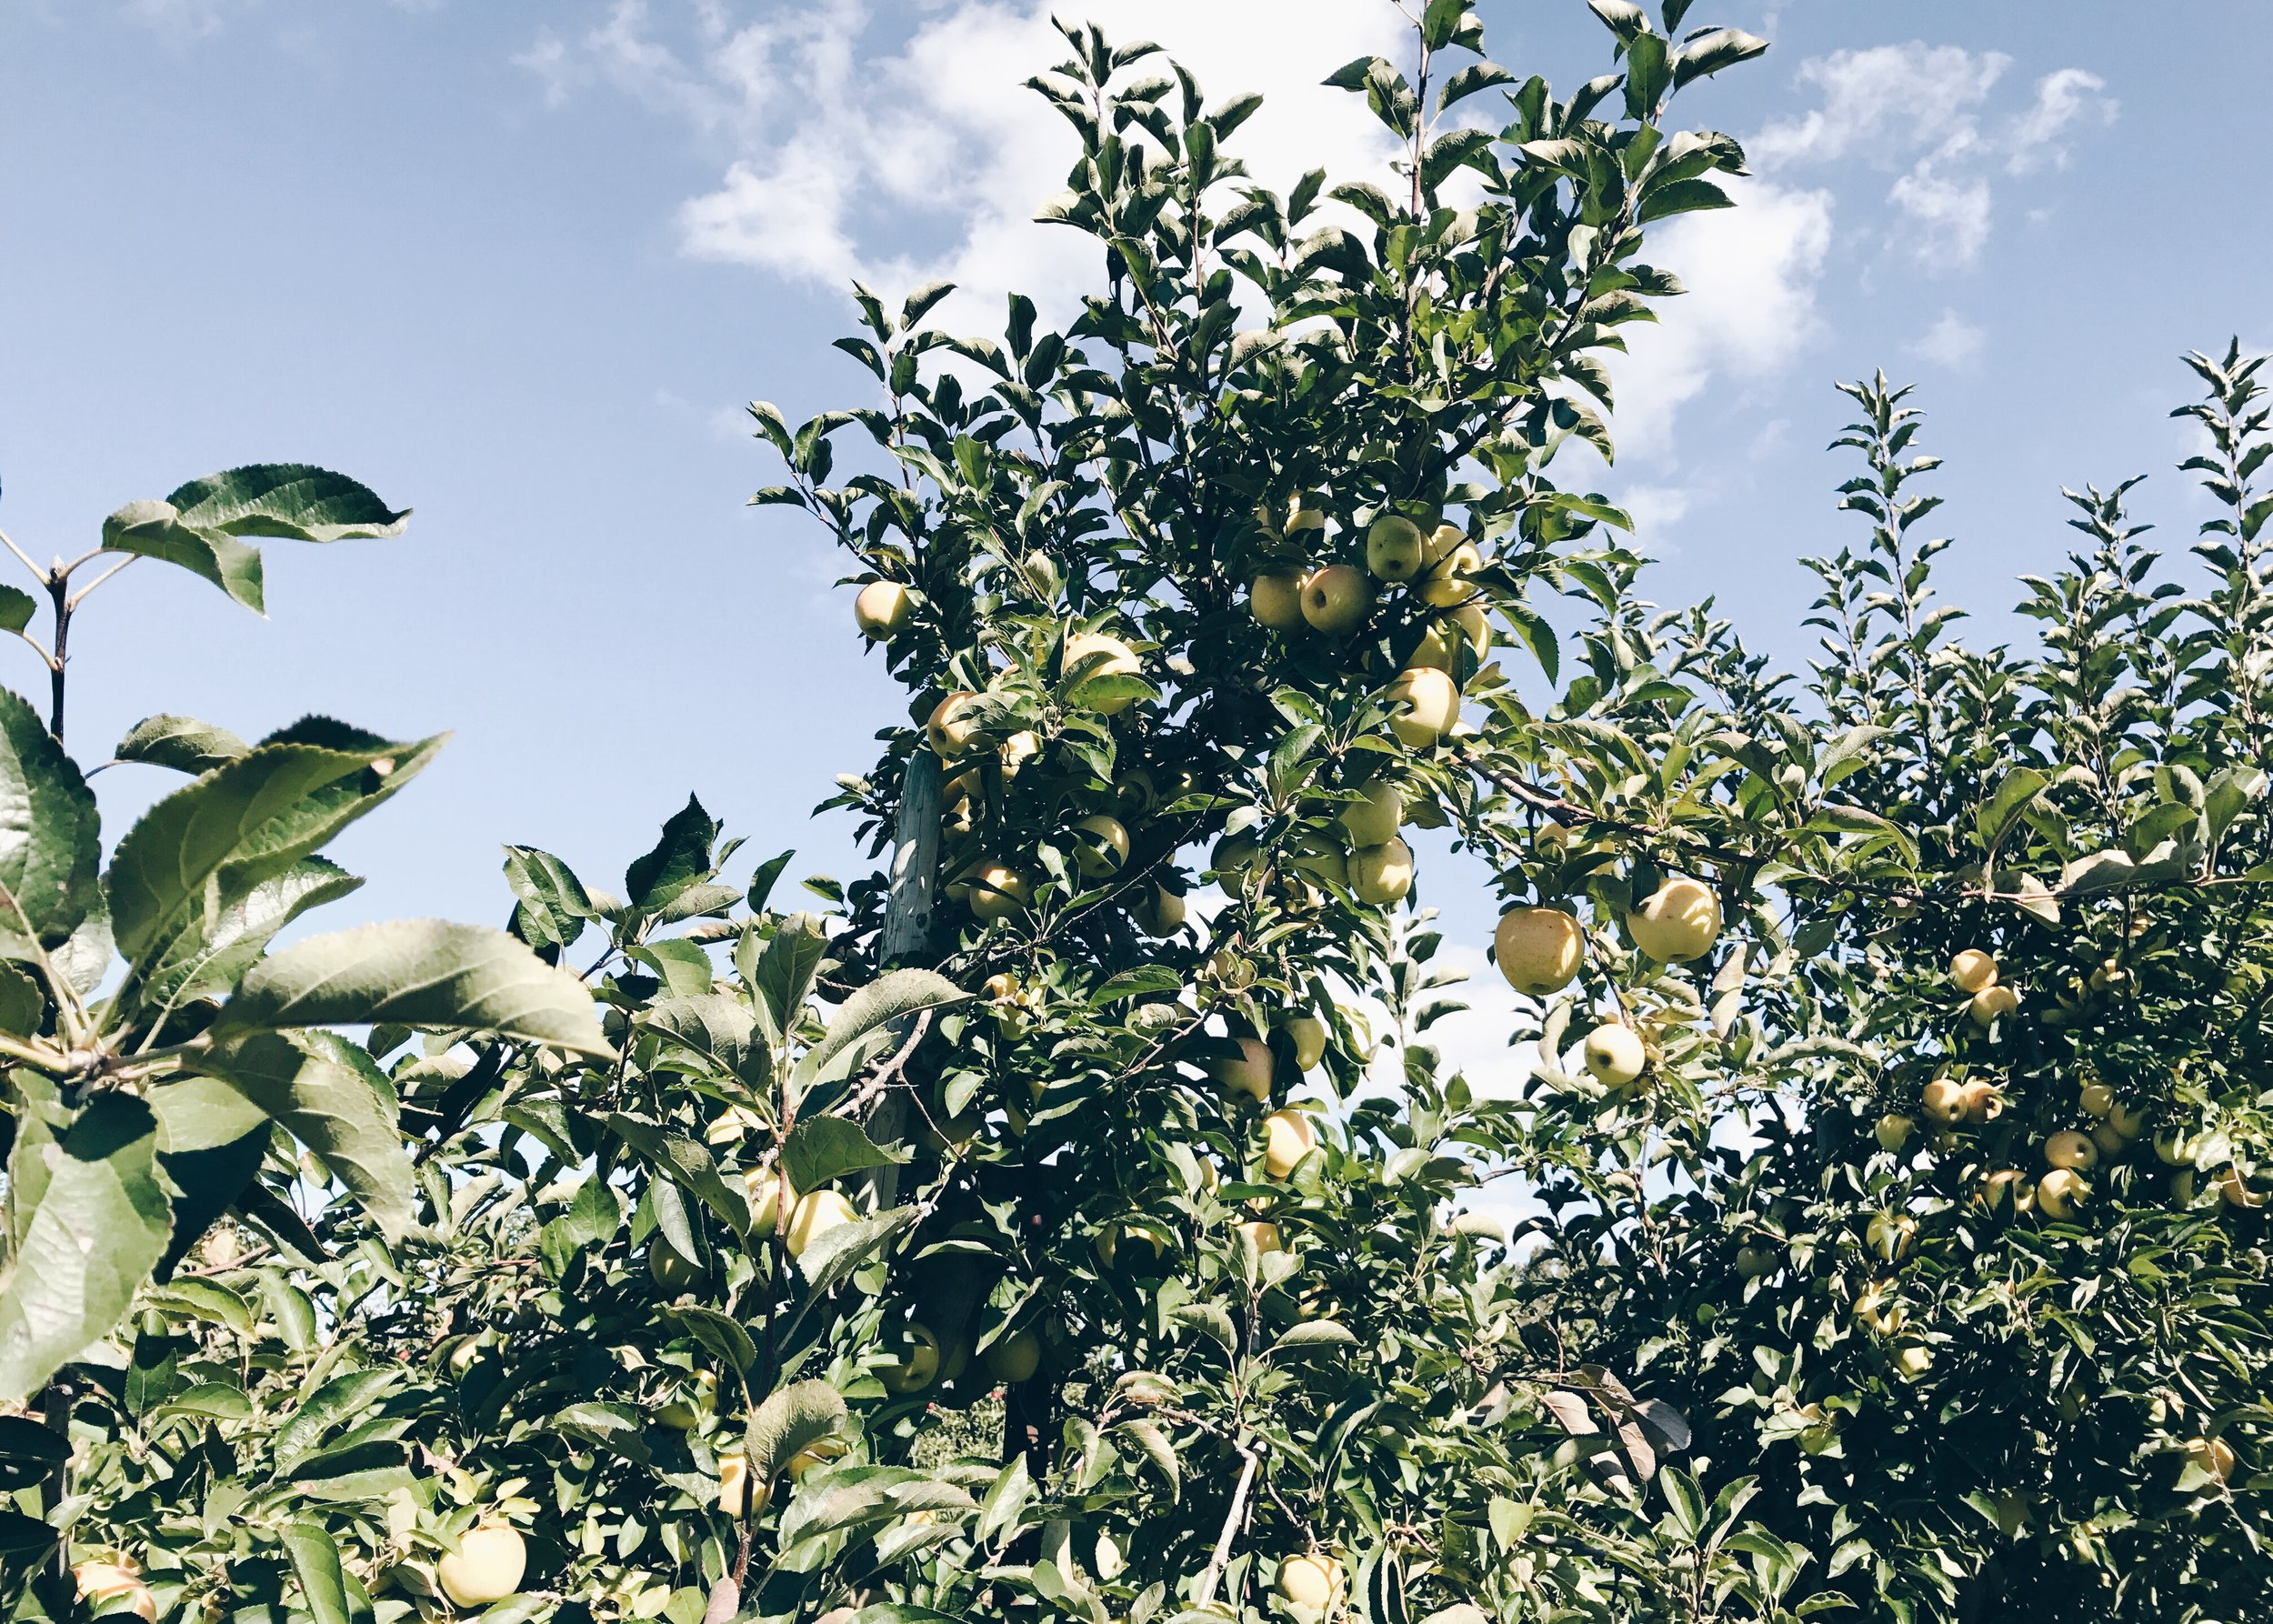 sam-c-perry-apple-and-pumpkin-picking-delicious-orchards-apple-tart-apple-tree.jpg